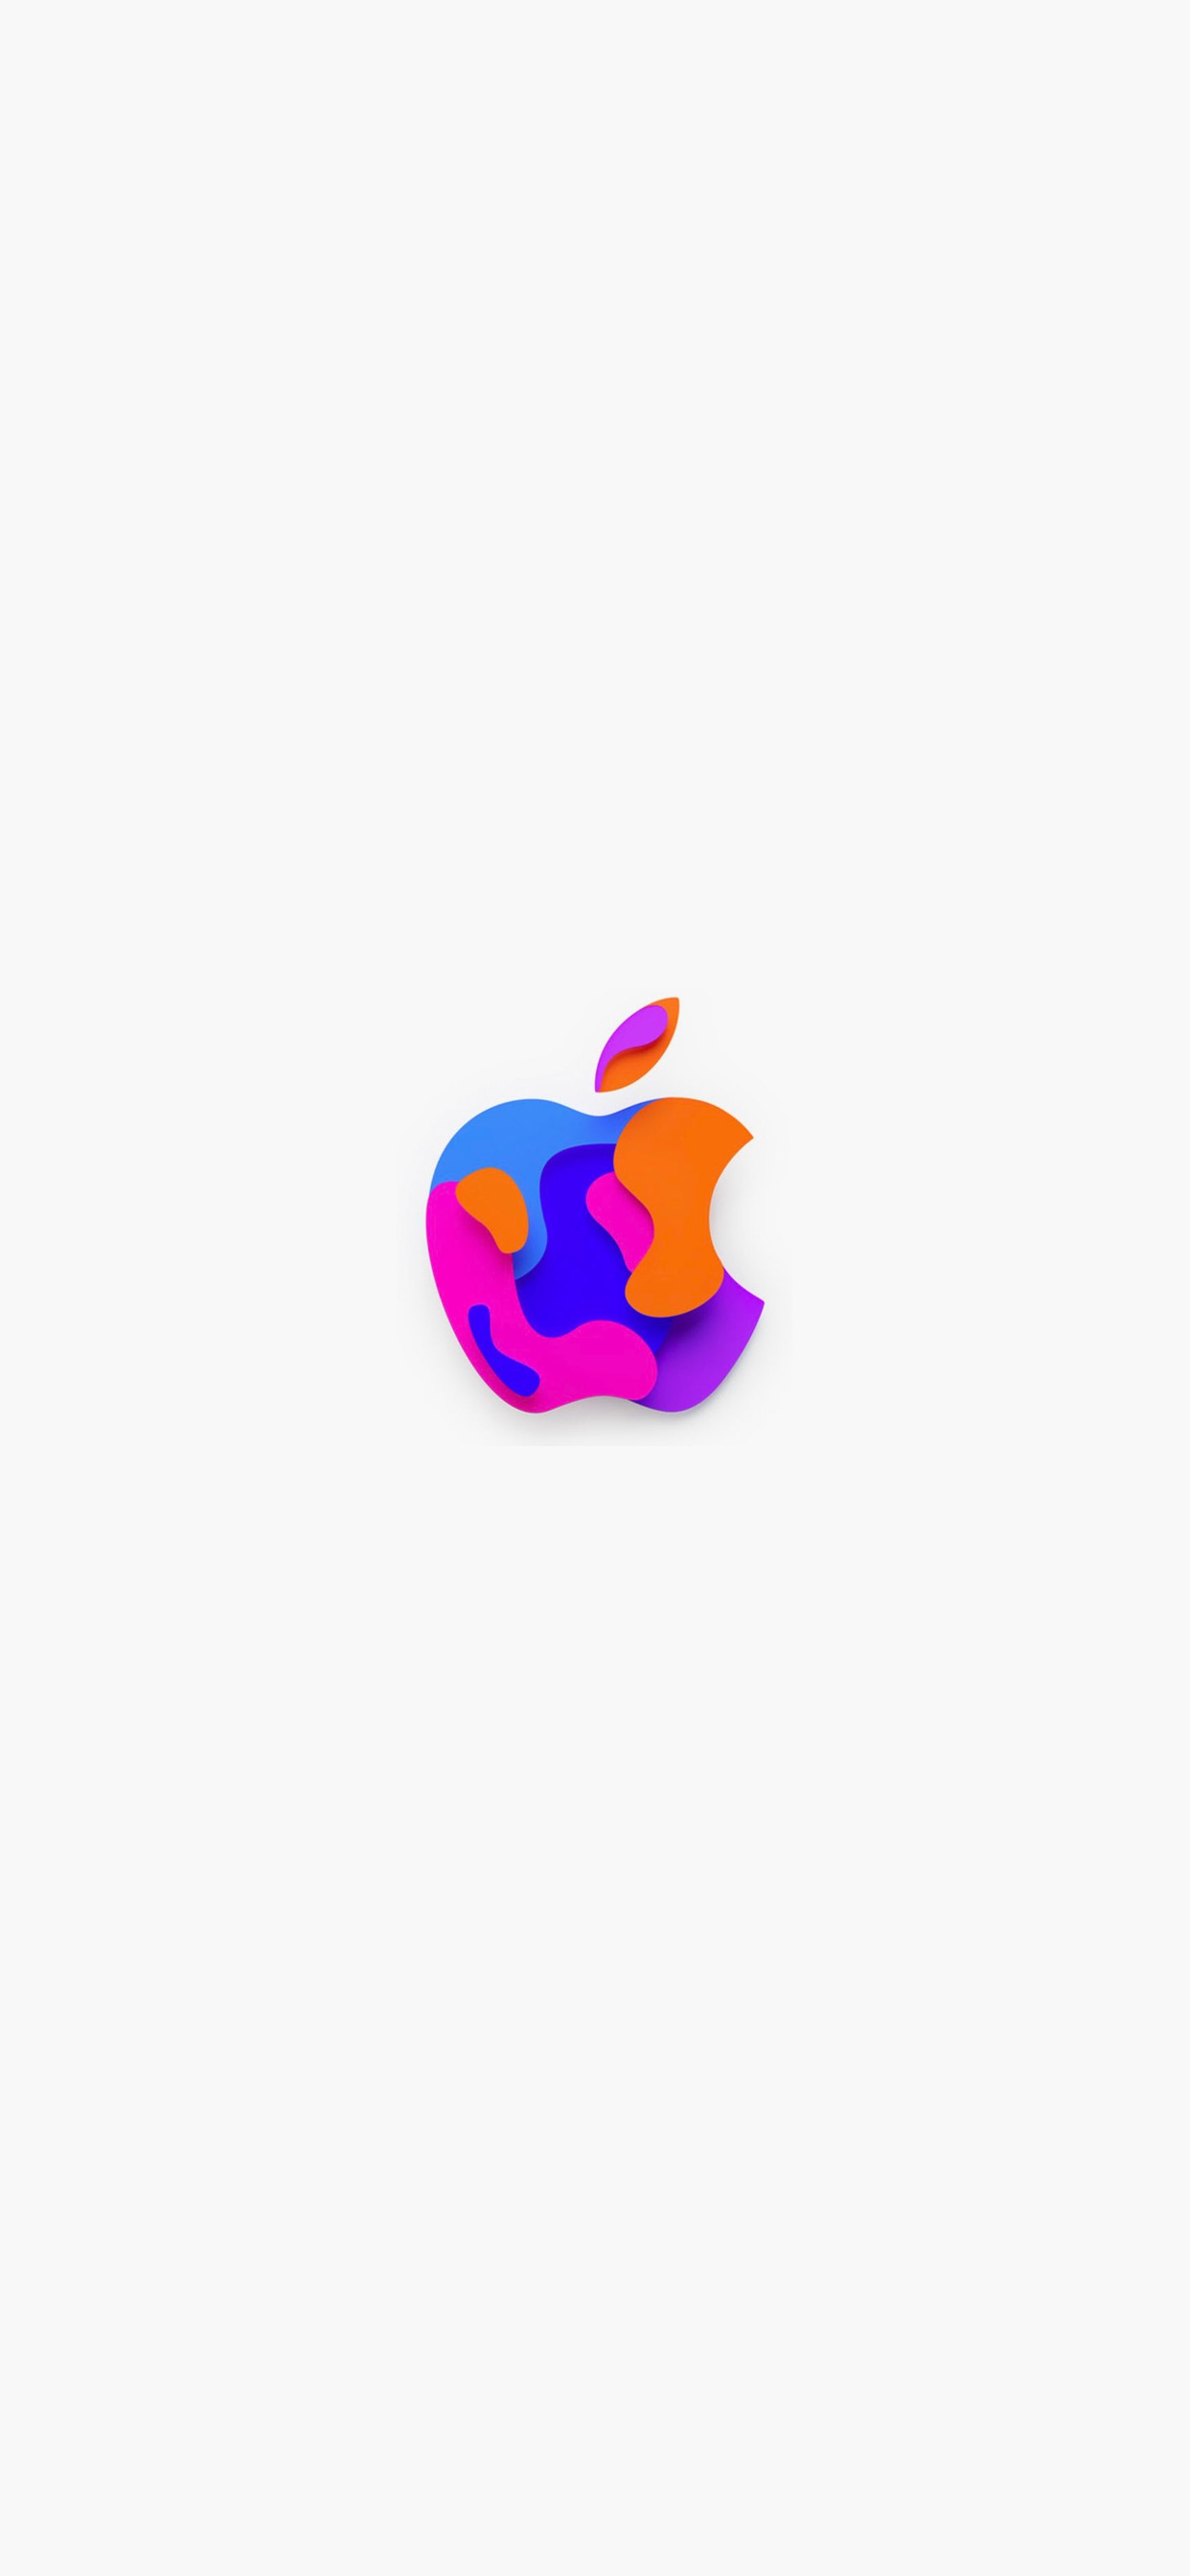 14 Apple logo